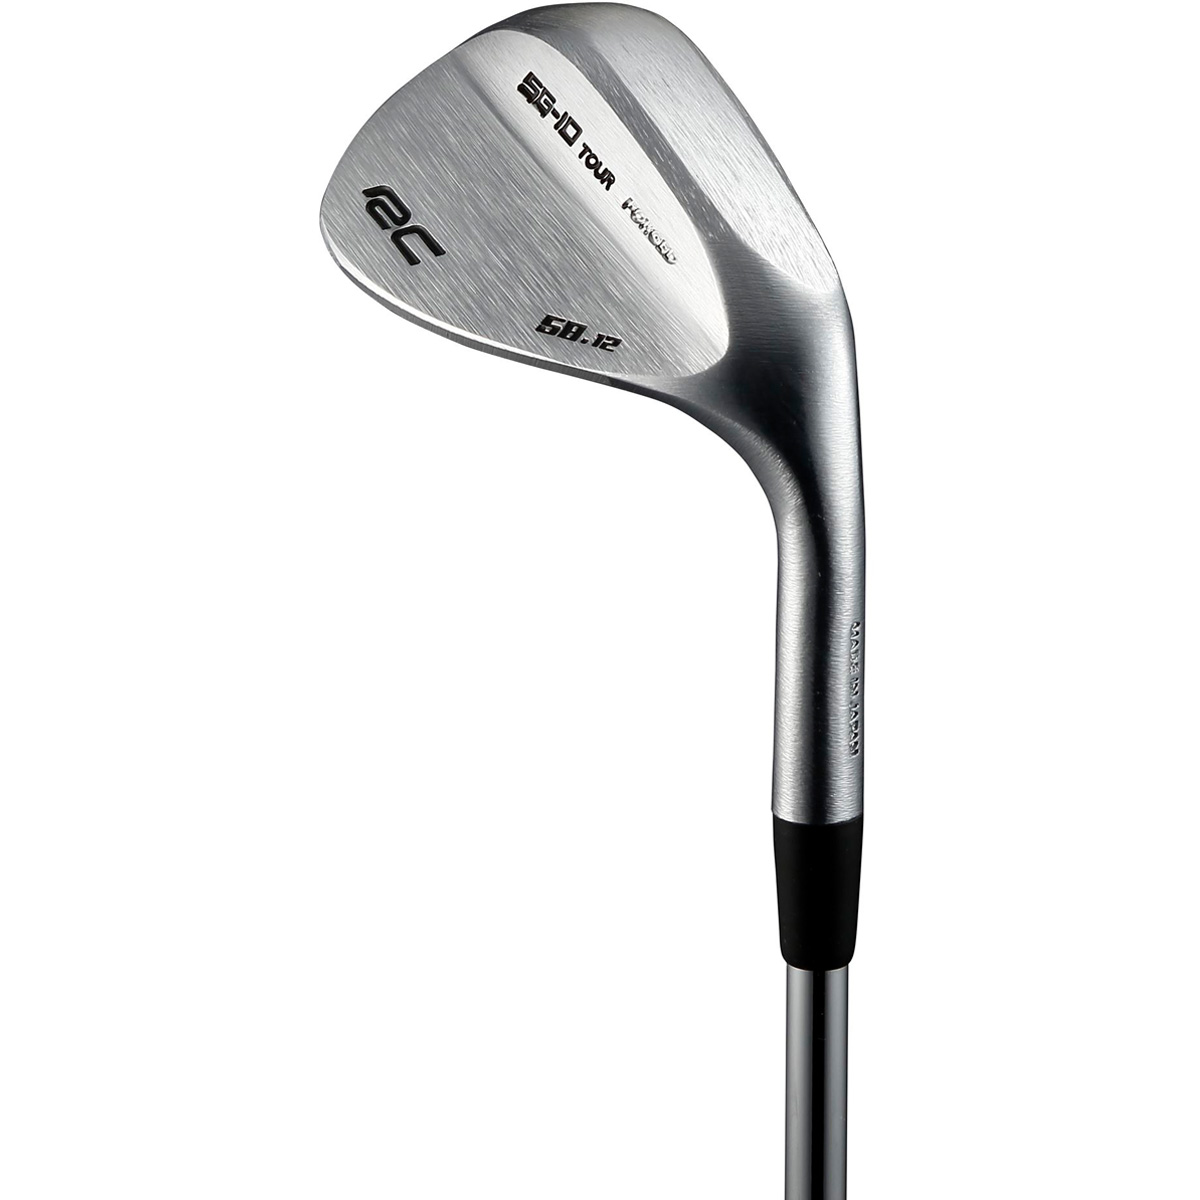 SG-10 TOUR FORGED ウェッジ N.S.PRO MODUS3 WEDGE 115